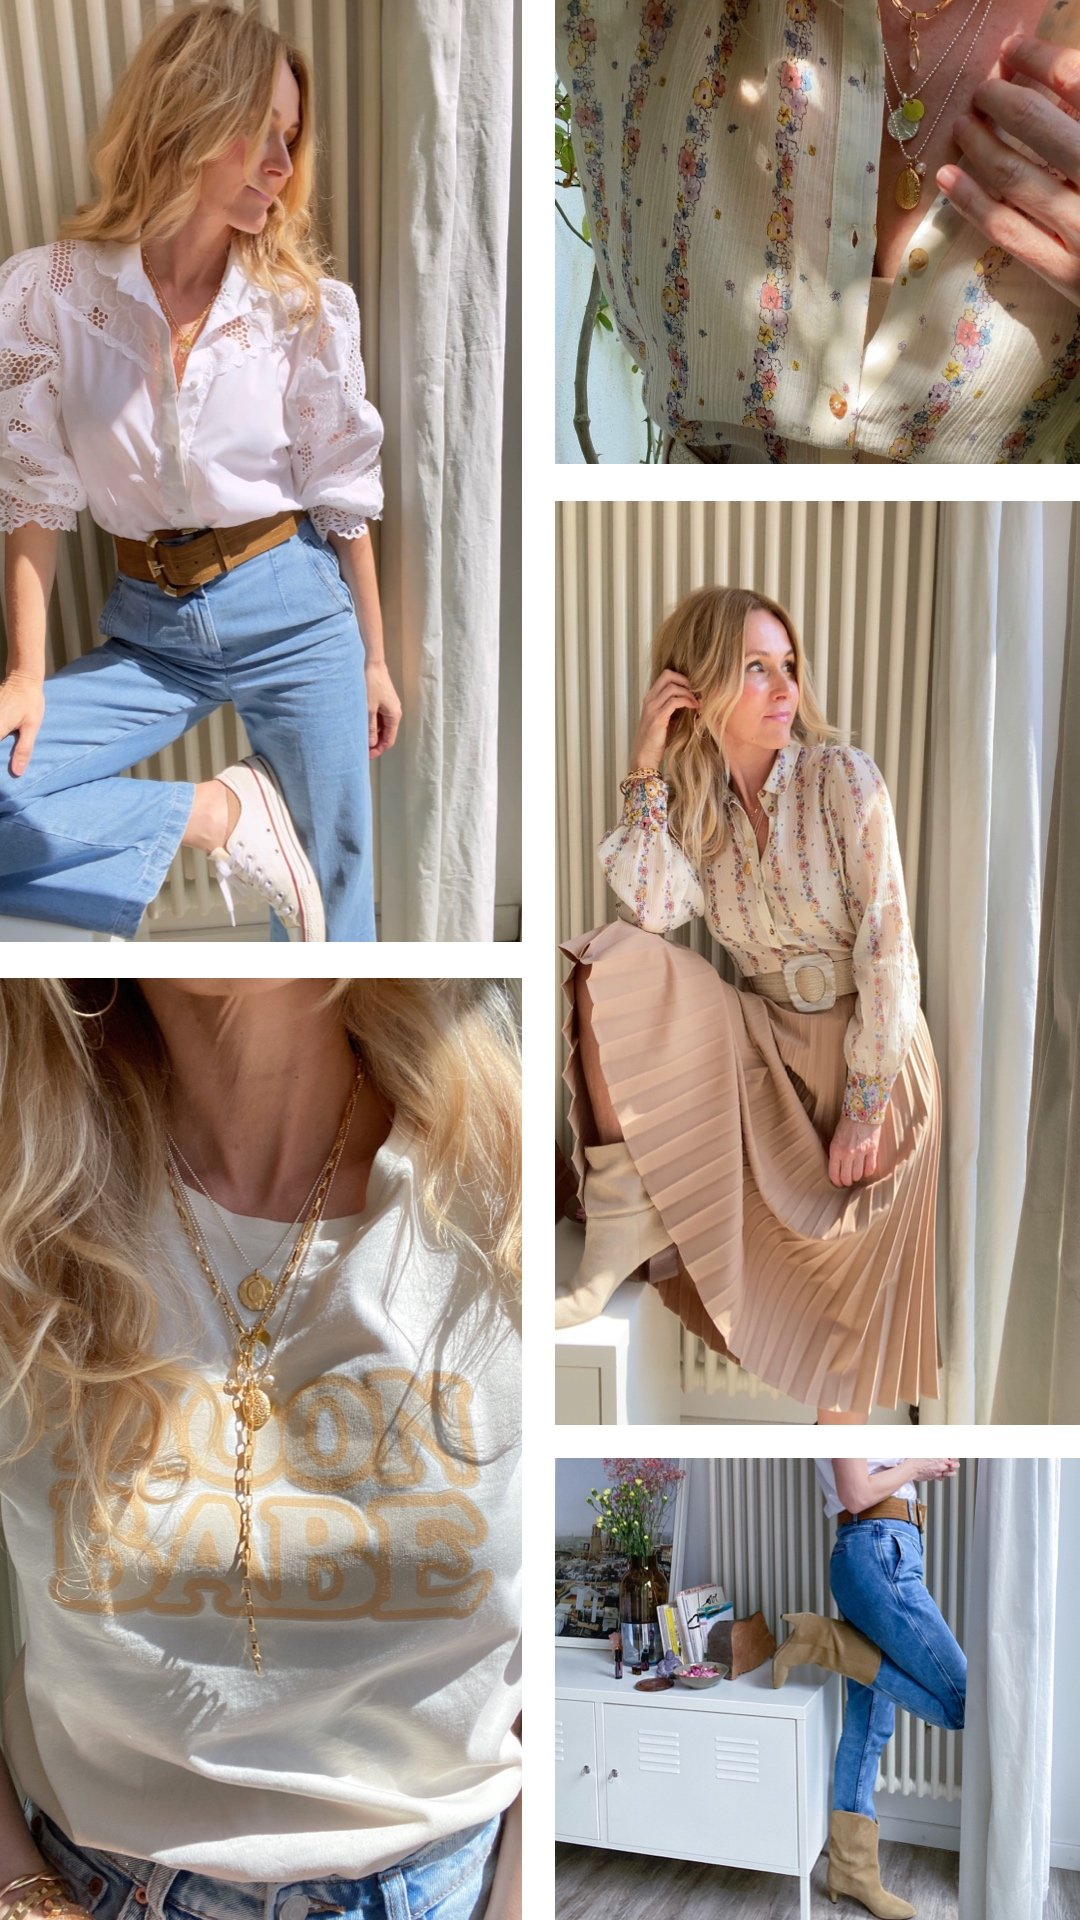 Nowshine-Mai-Mix-Personal-Style-Outfit-Inspiration